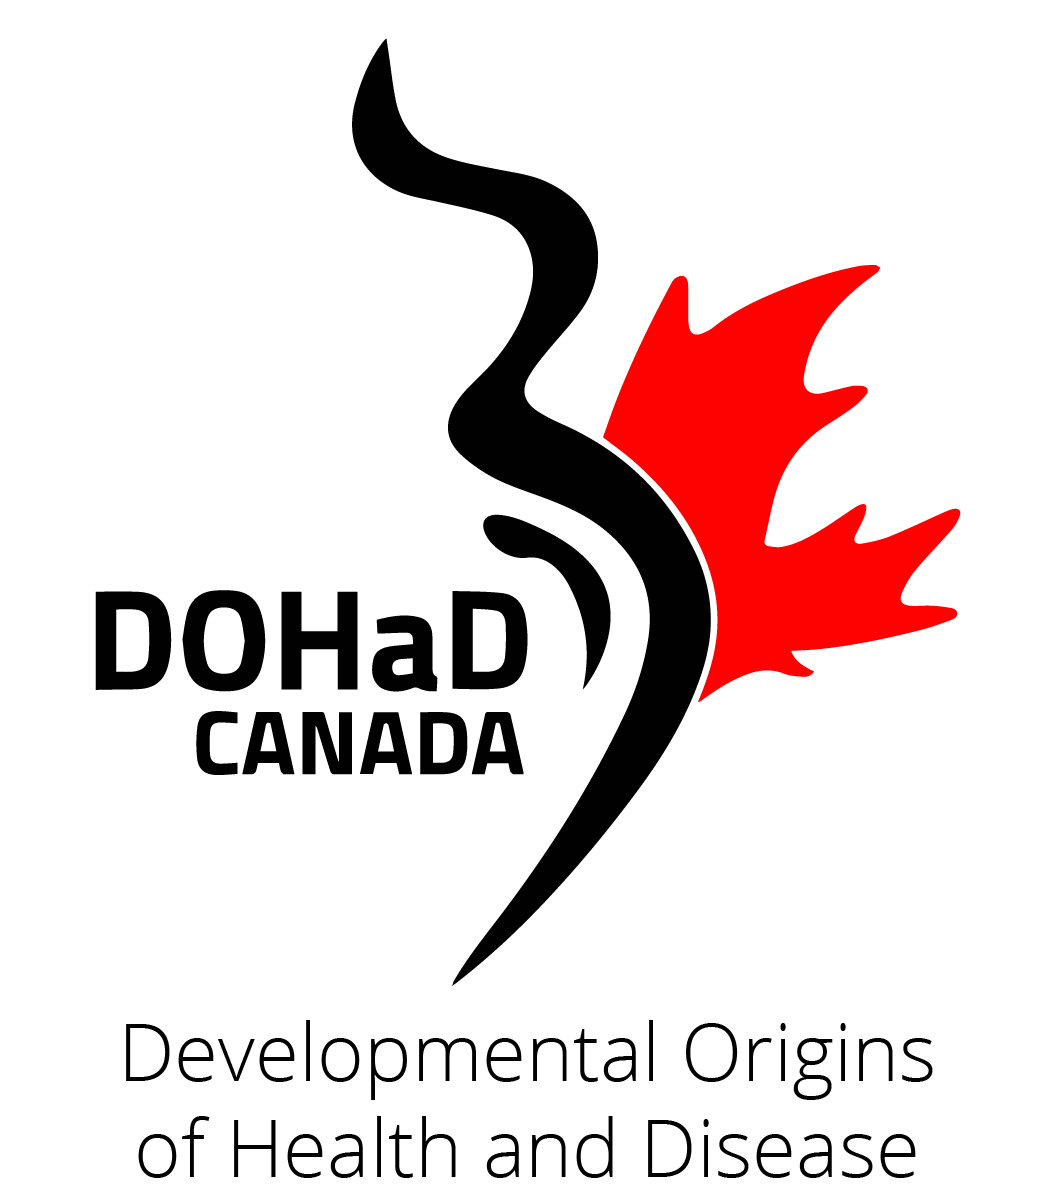 Developmental Origins of Health and Disease (DOHaD) Canada